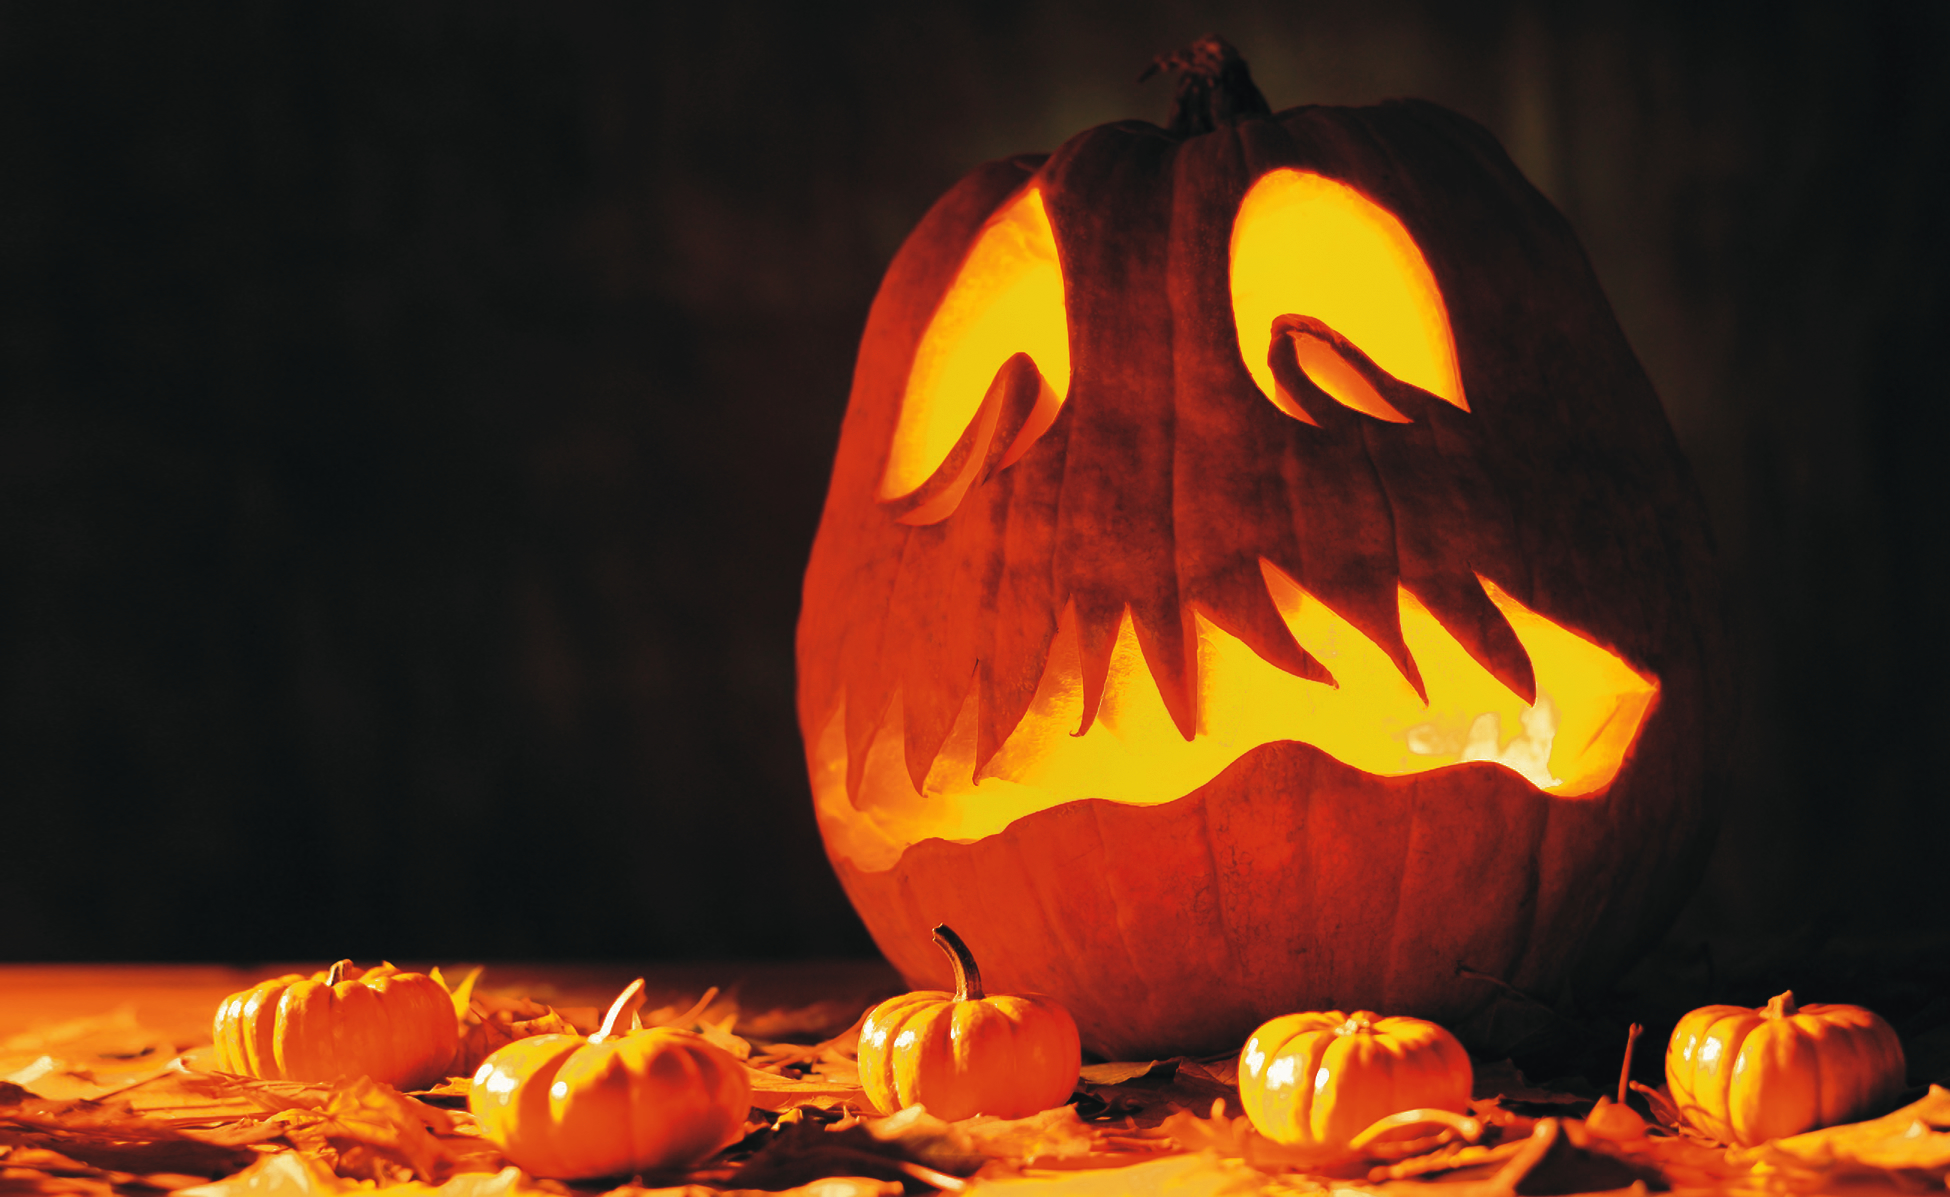 halloween: behind the mask | united church of god